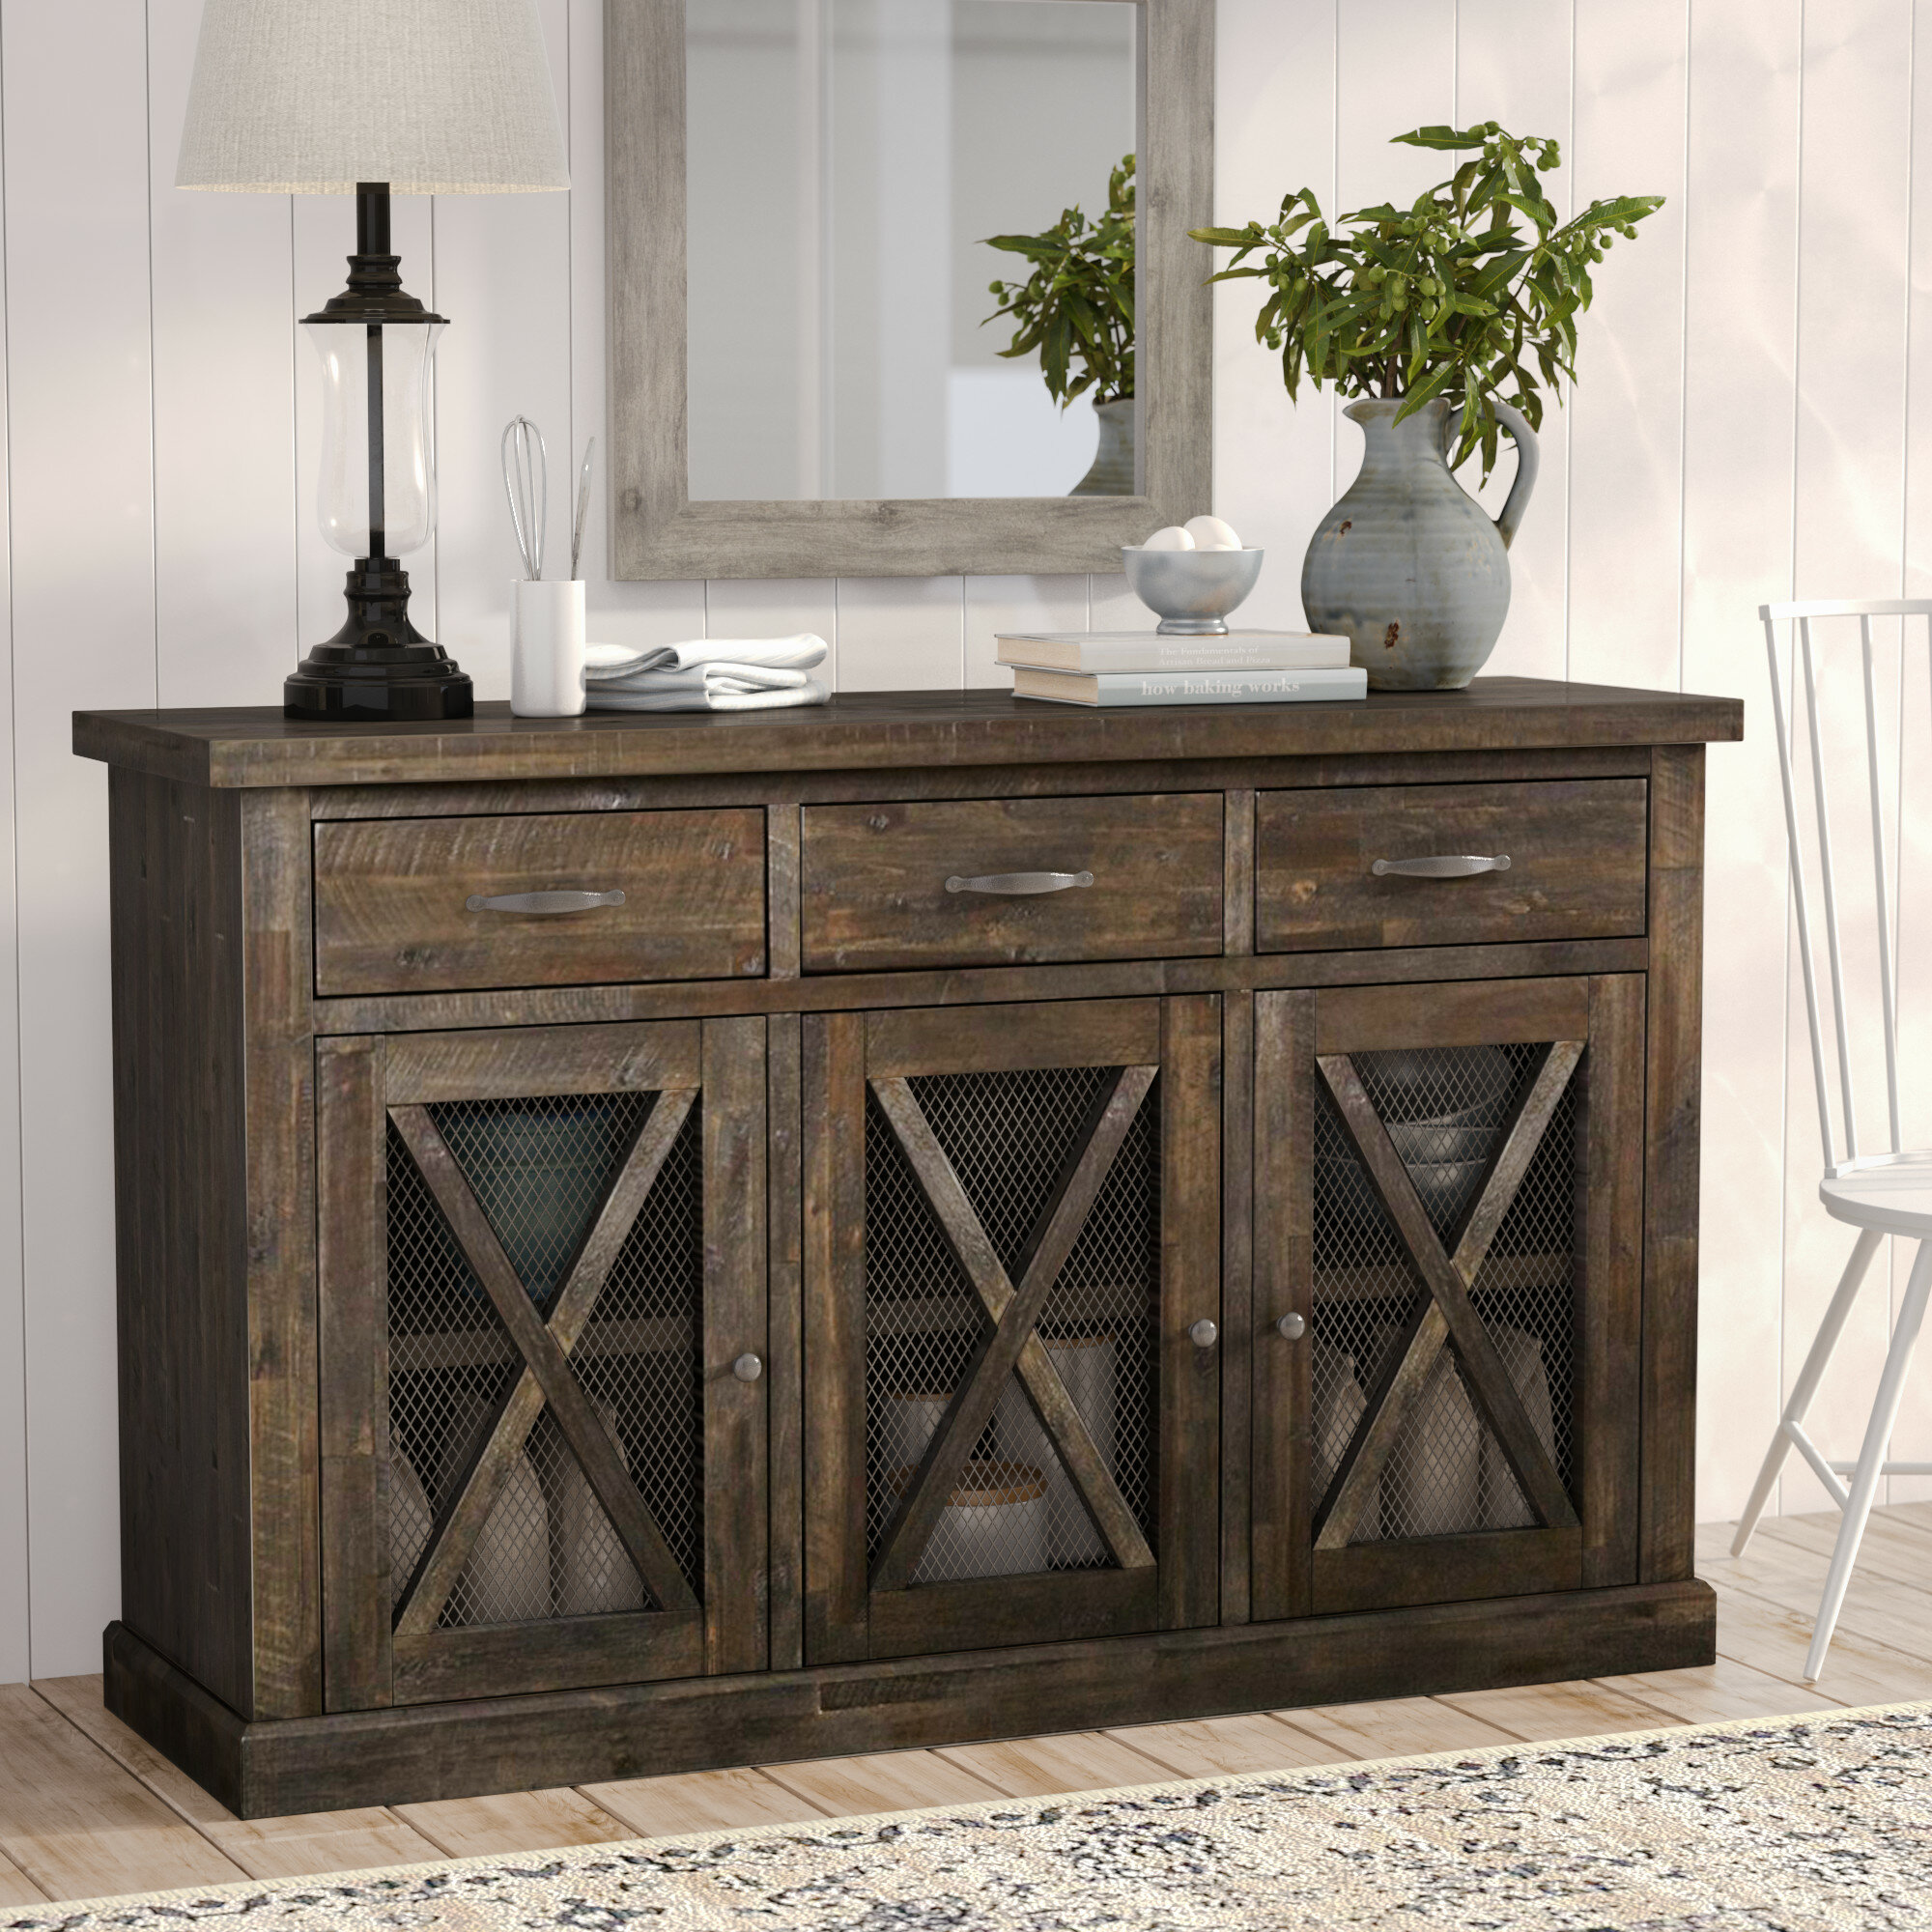 lifestyle ivesibas itm scandinavian ivelo apartment furniture rack with buffet table sideboard ash wooden wine